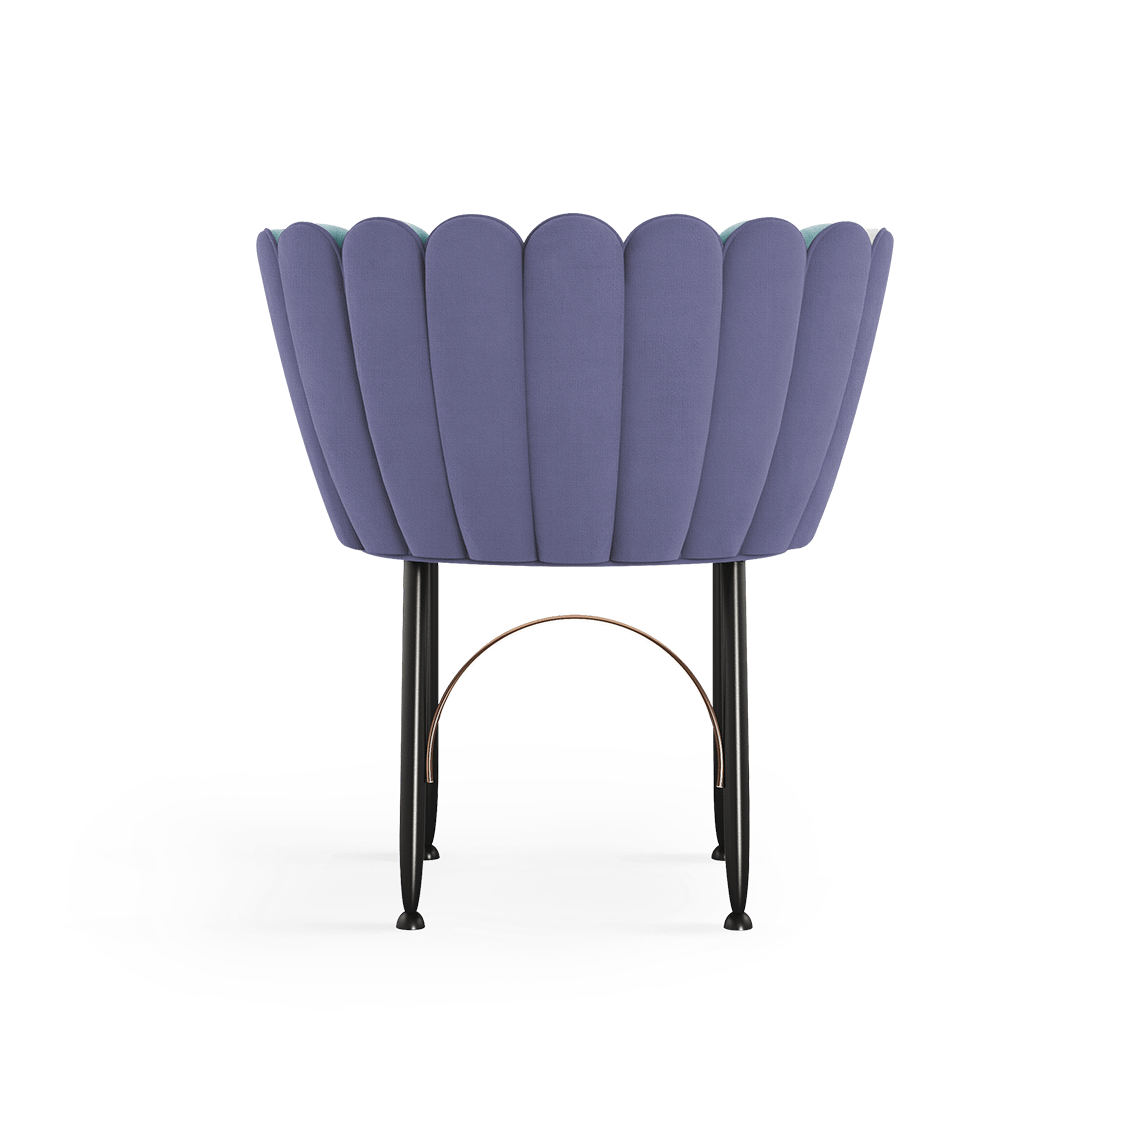 Angel Mid-Century Dining Chair in purple cotton velvet